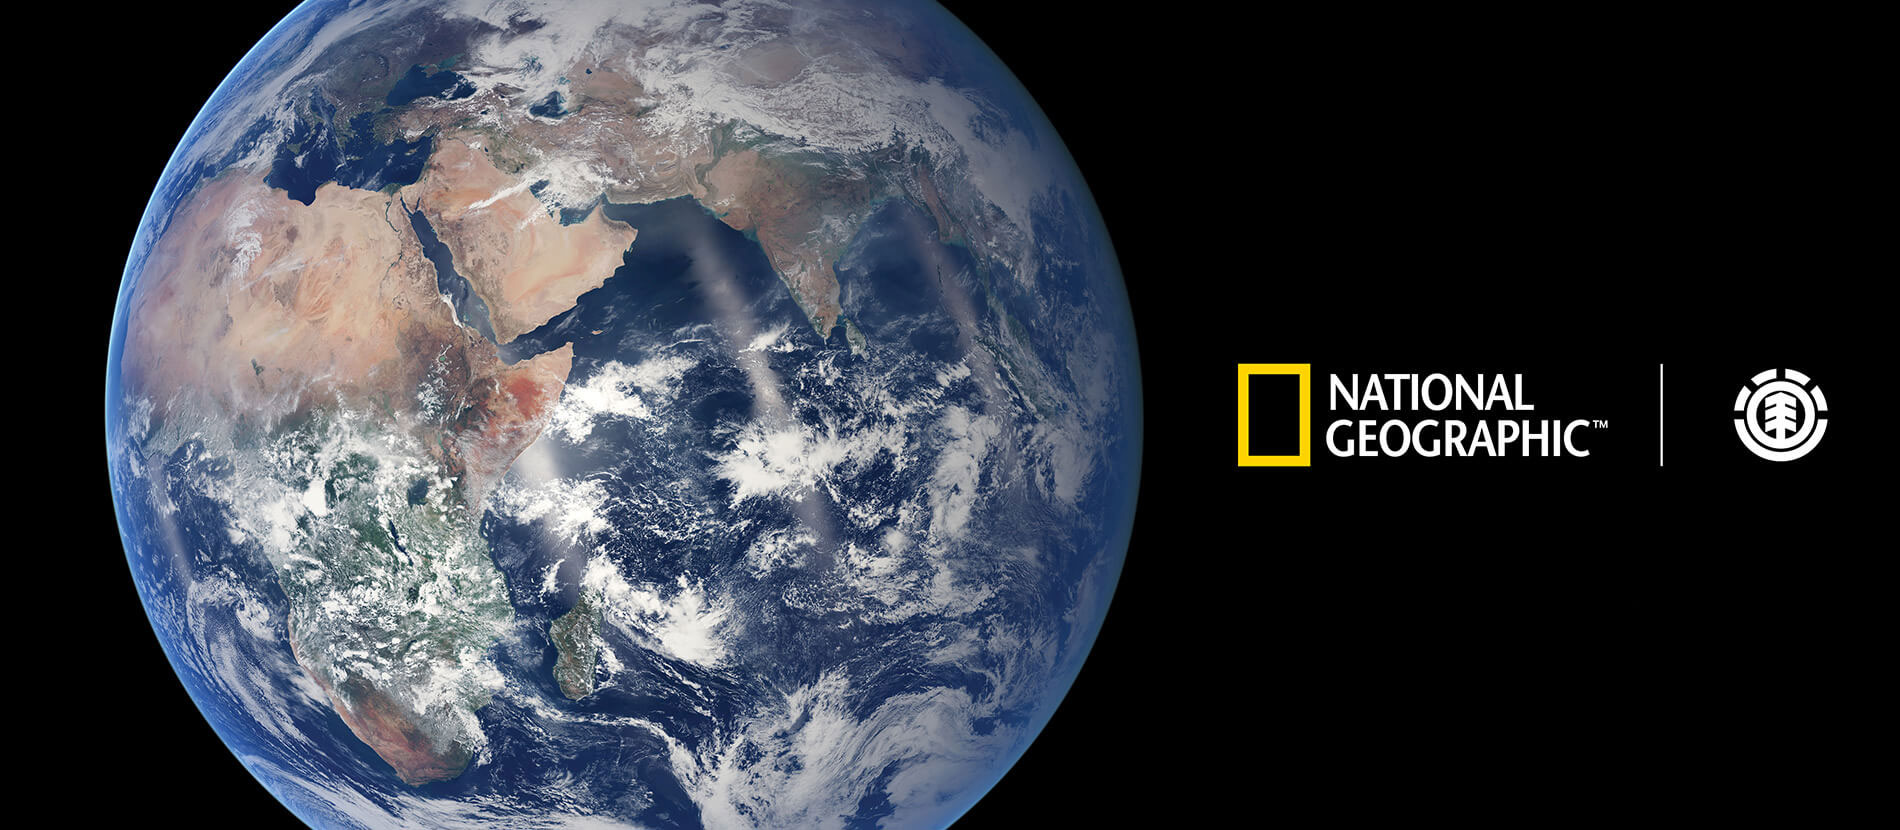 national geographic future nature